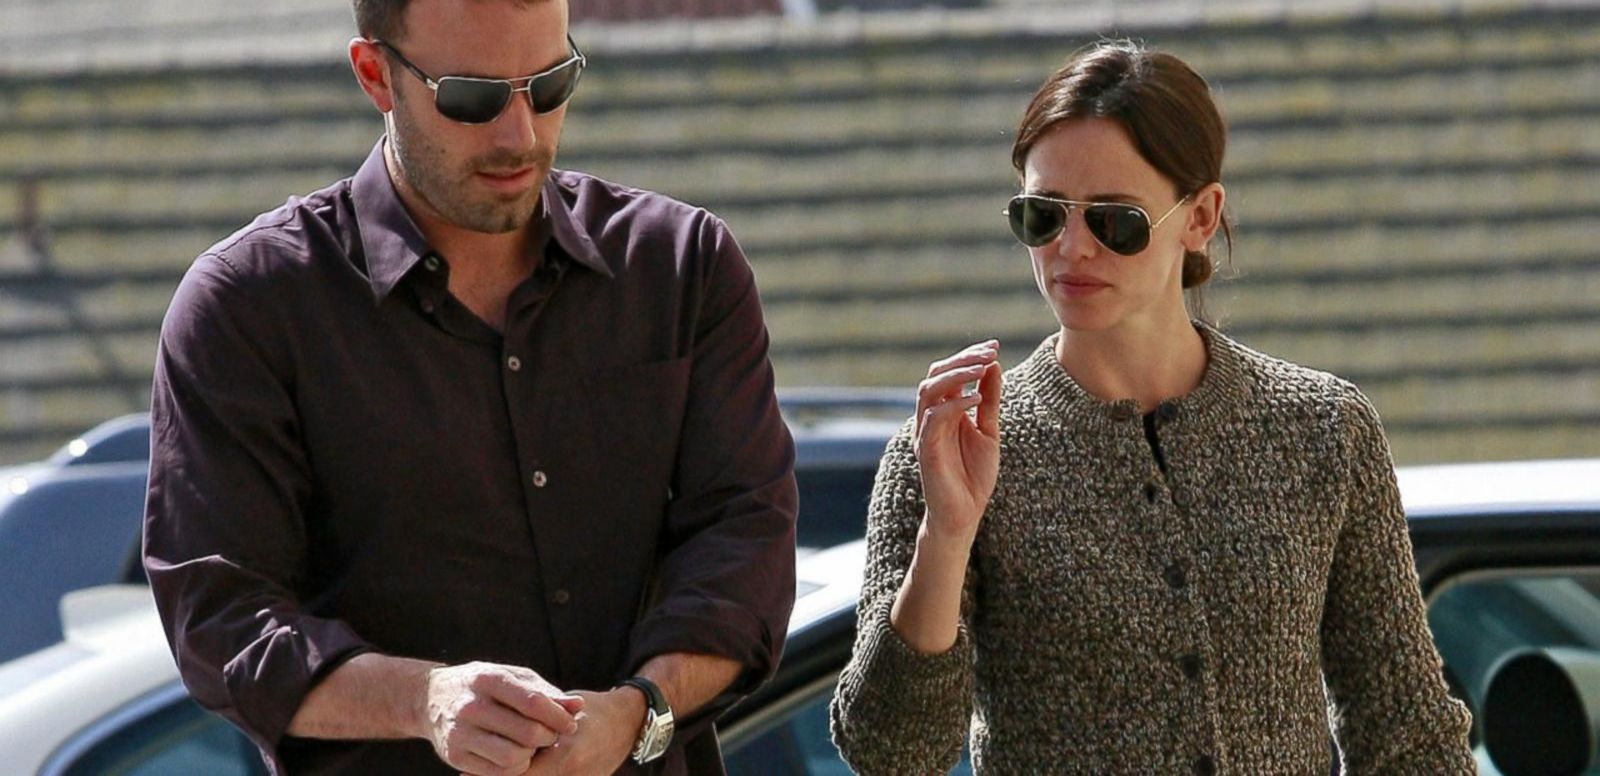 VIDEO: Ben Affleck, Jennifer Garner Lead Trend of Co-Habitating While Divorced